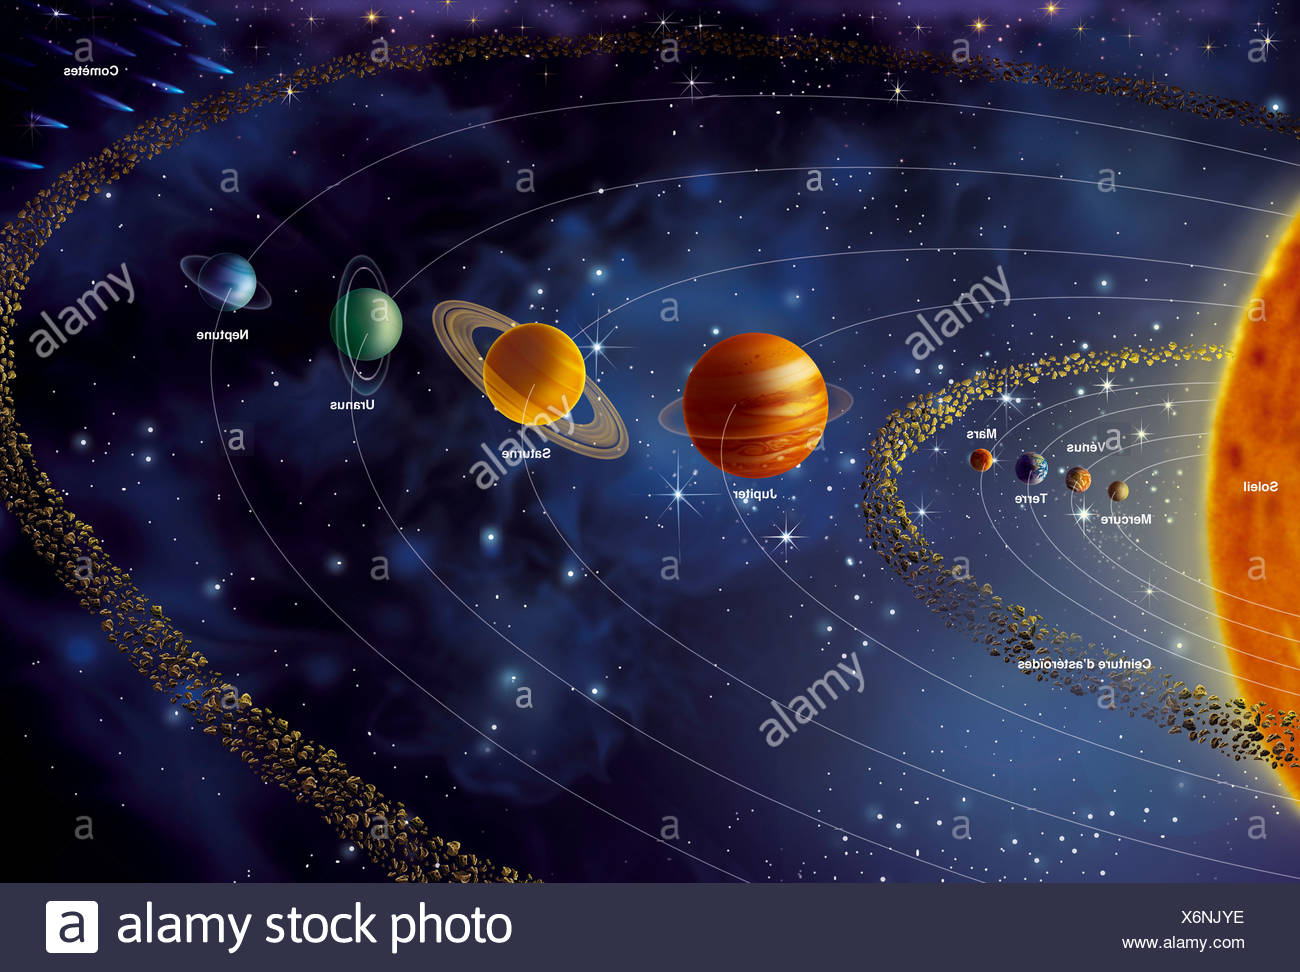 Uranus planet photos uranus planet images alamy - Systeme solaire nice ...